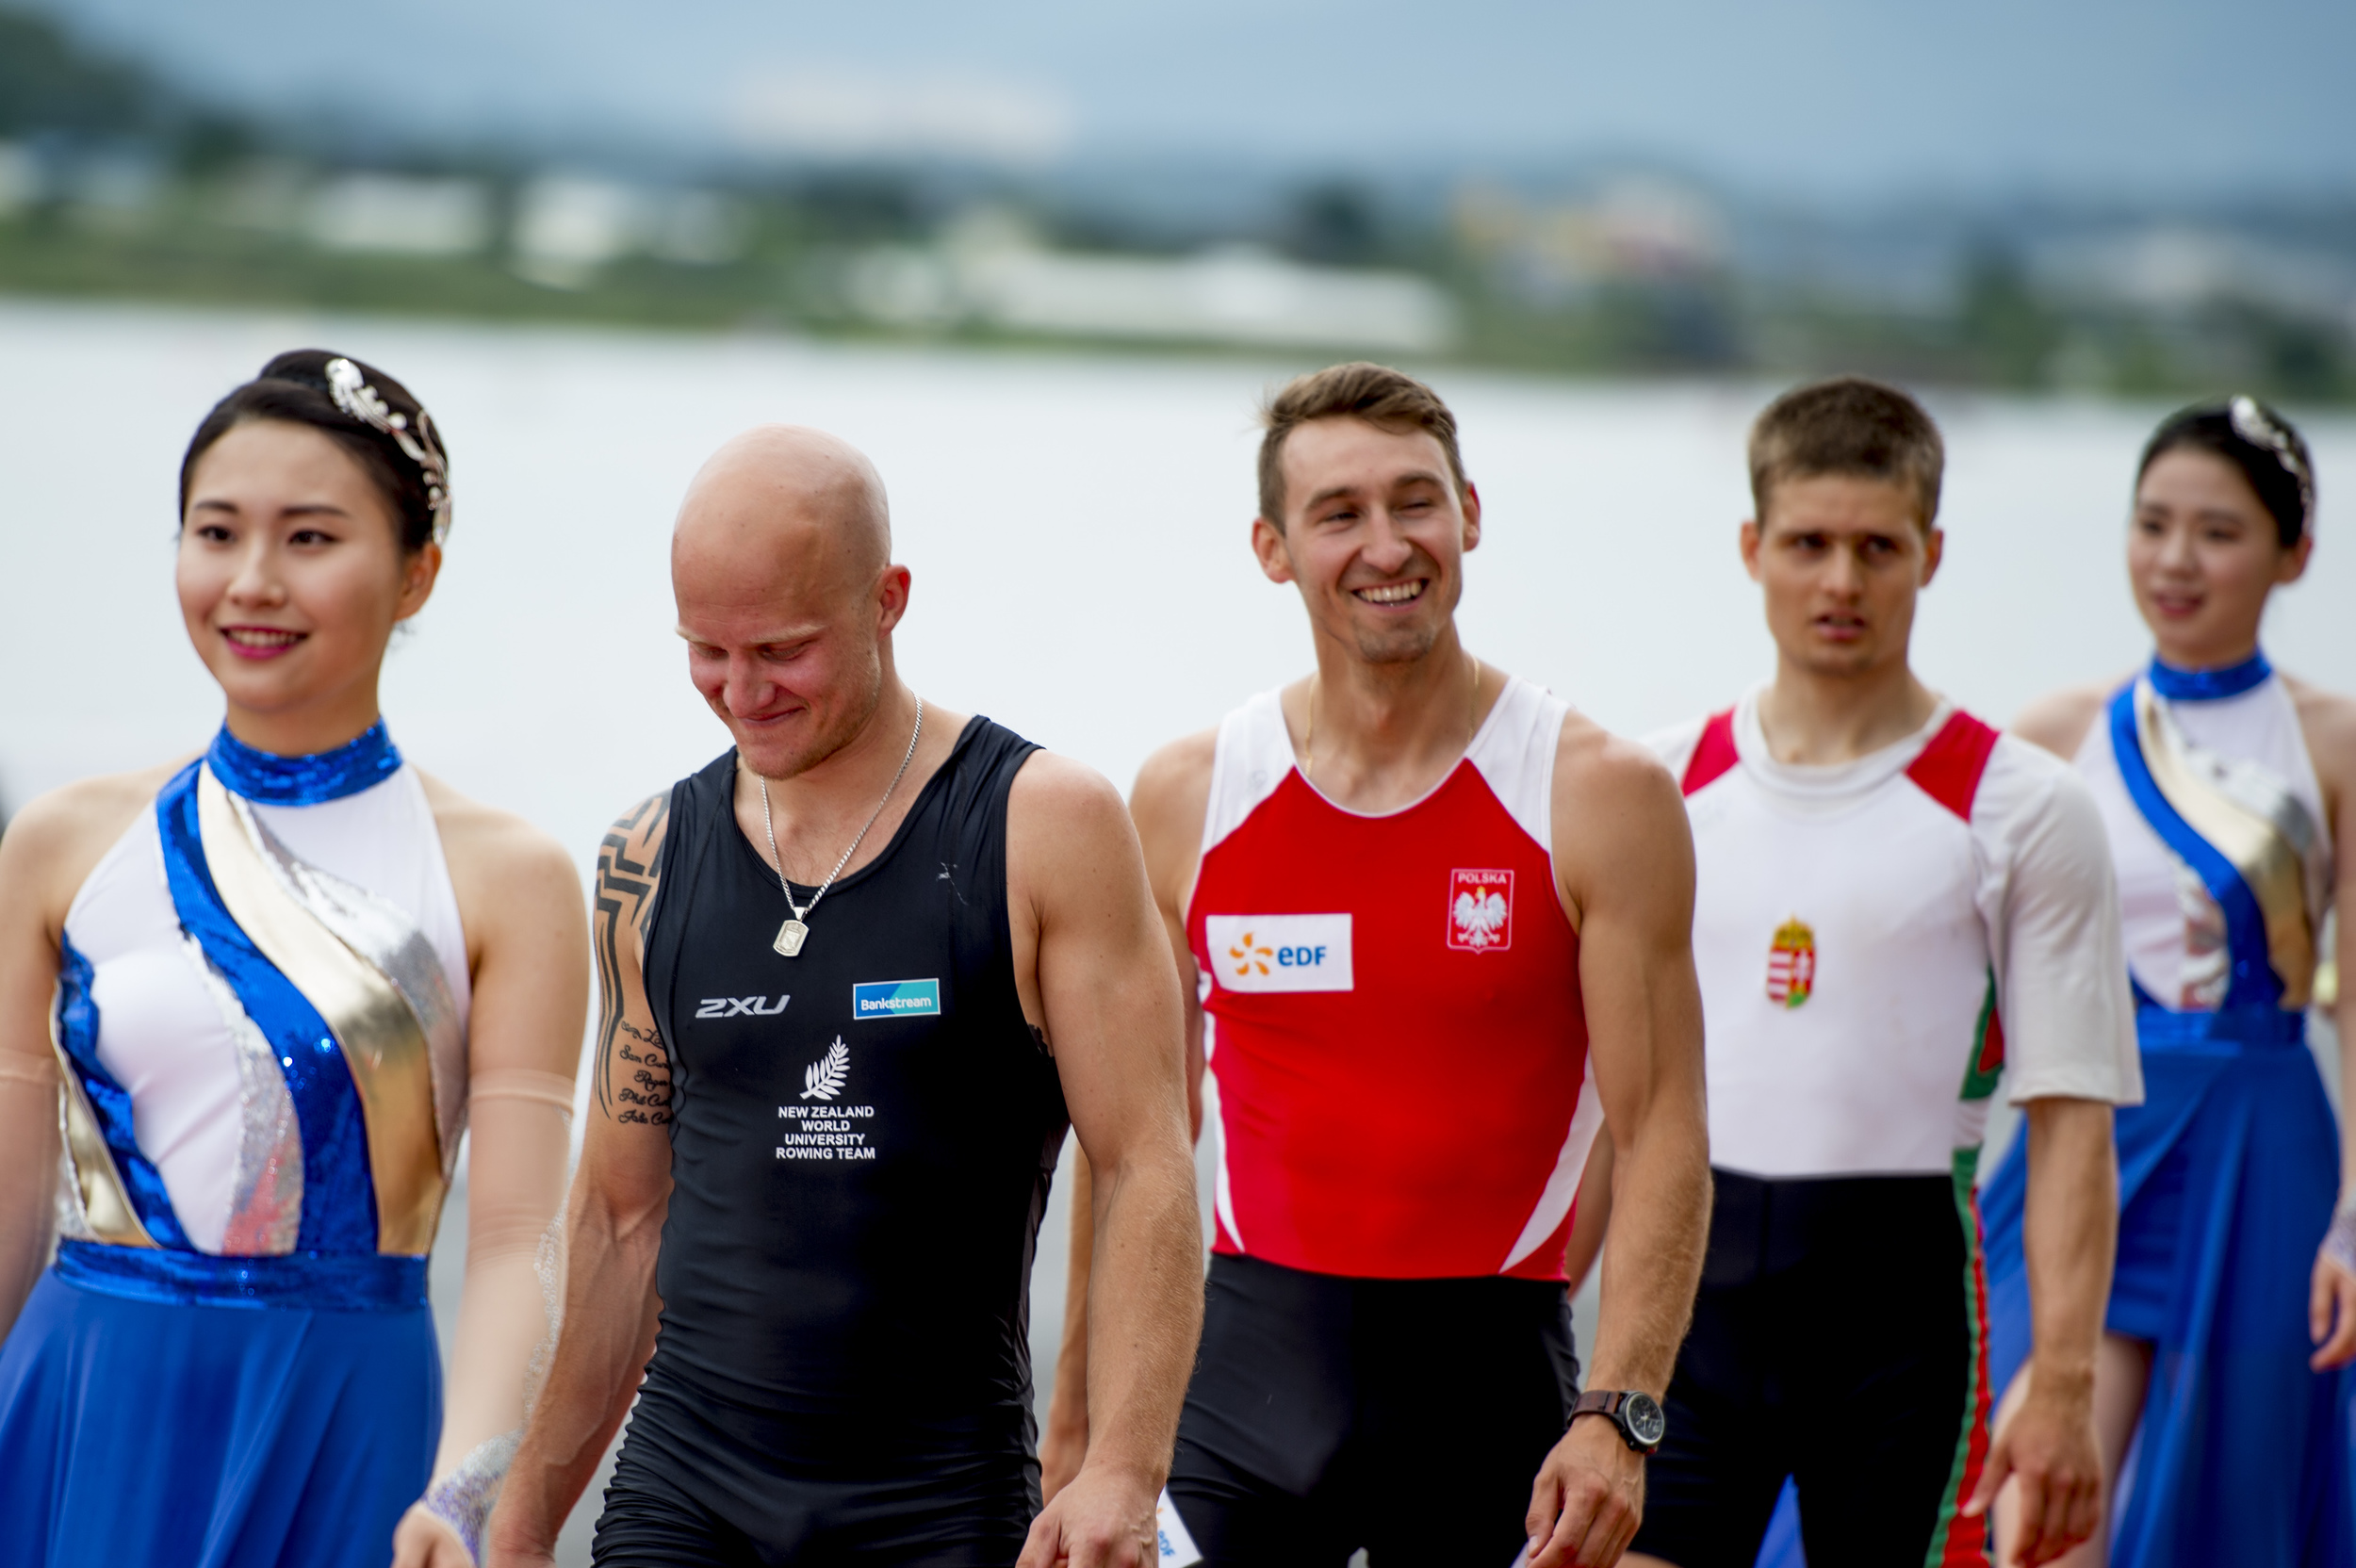 Toby Cunliffe-Steel - 2015 World University Games - A-Final - Photo © Rowing Celebration (9).jpg